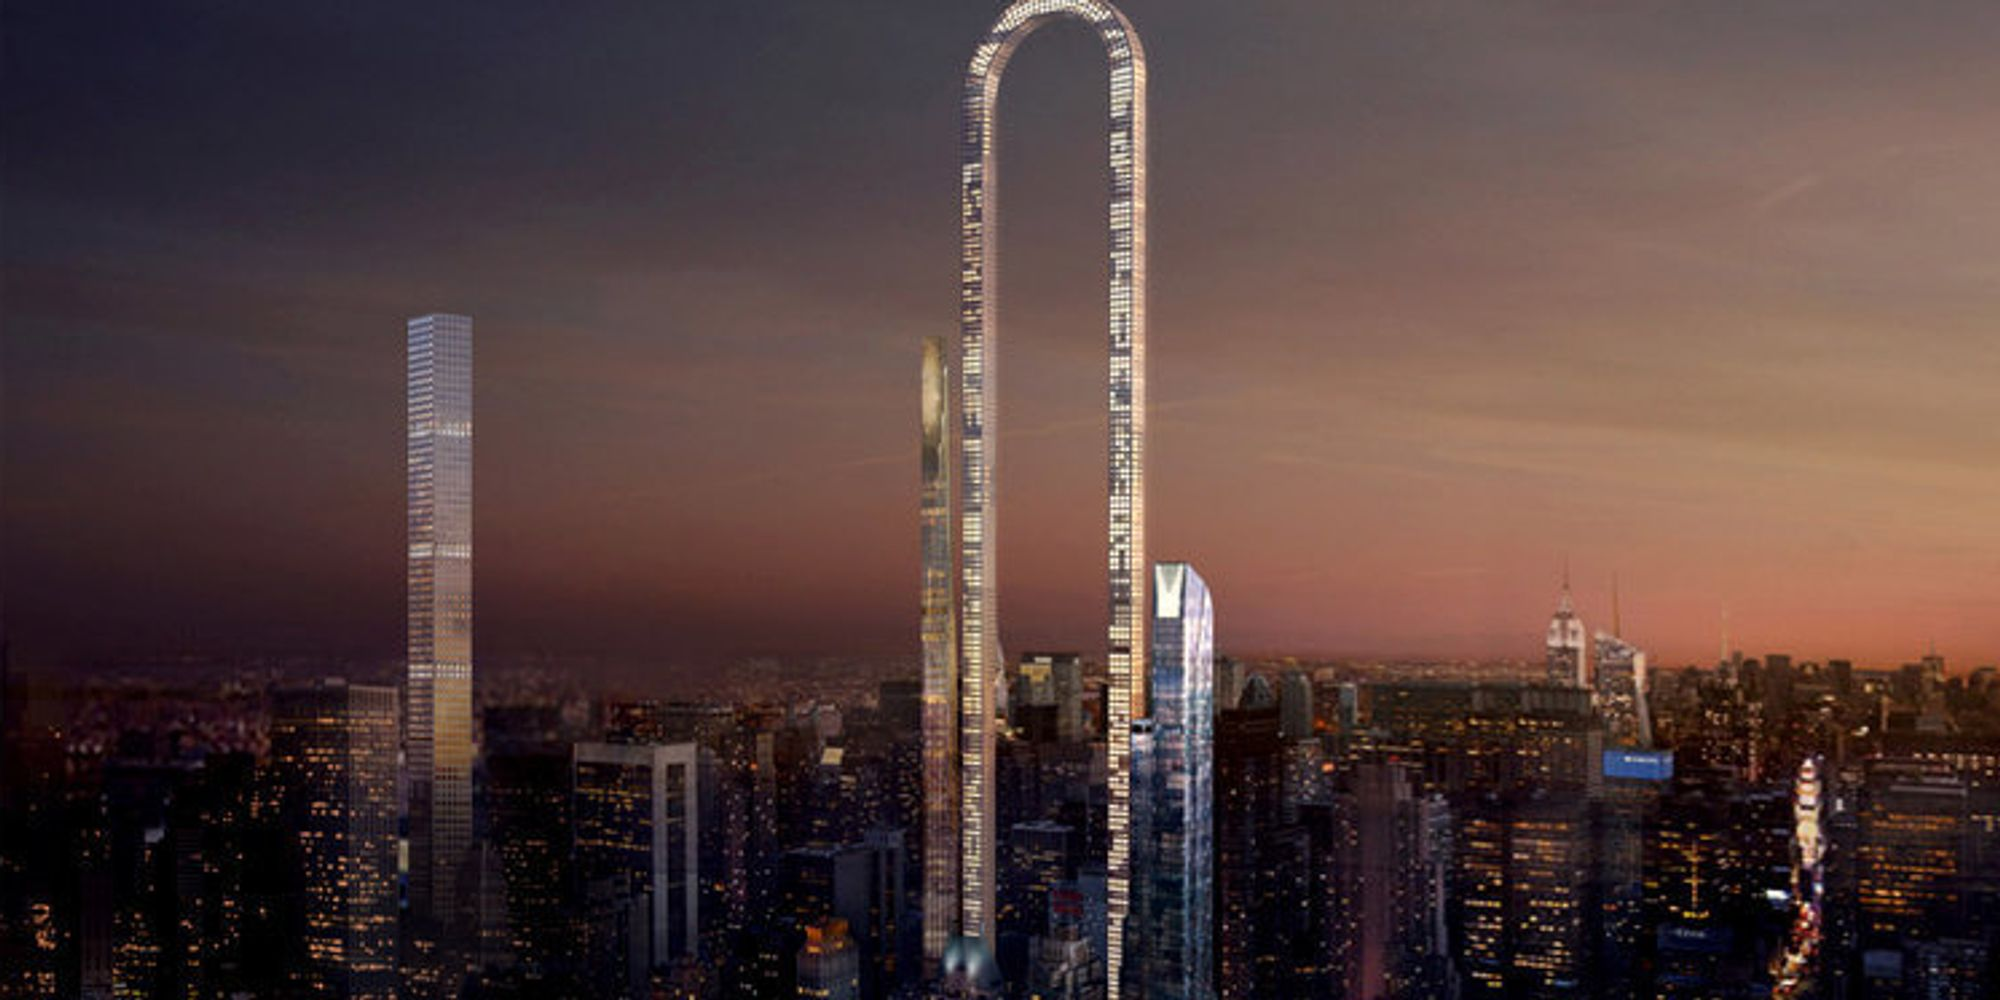 The Big Bend, A U-Shaped Skyscraper, Could Become The Longest In The World